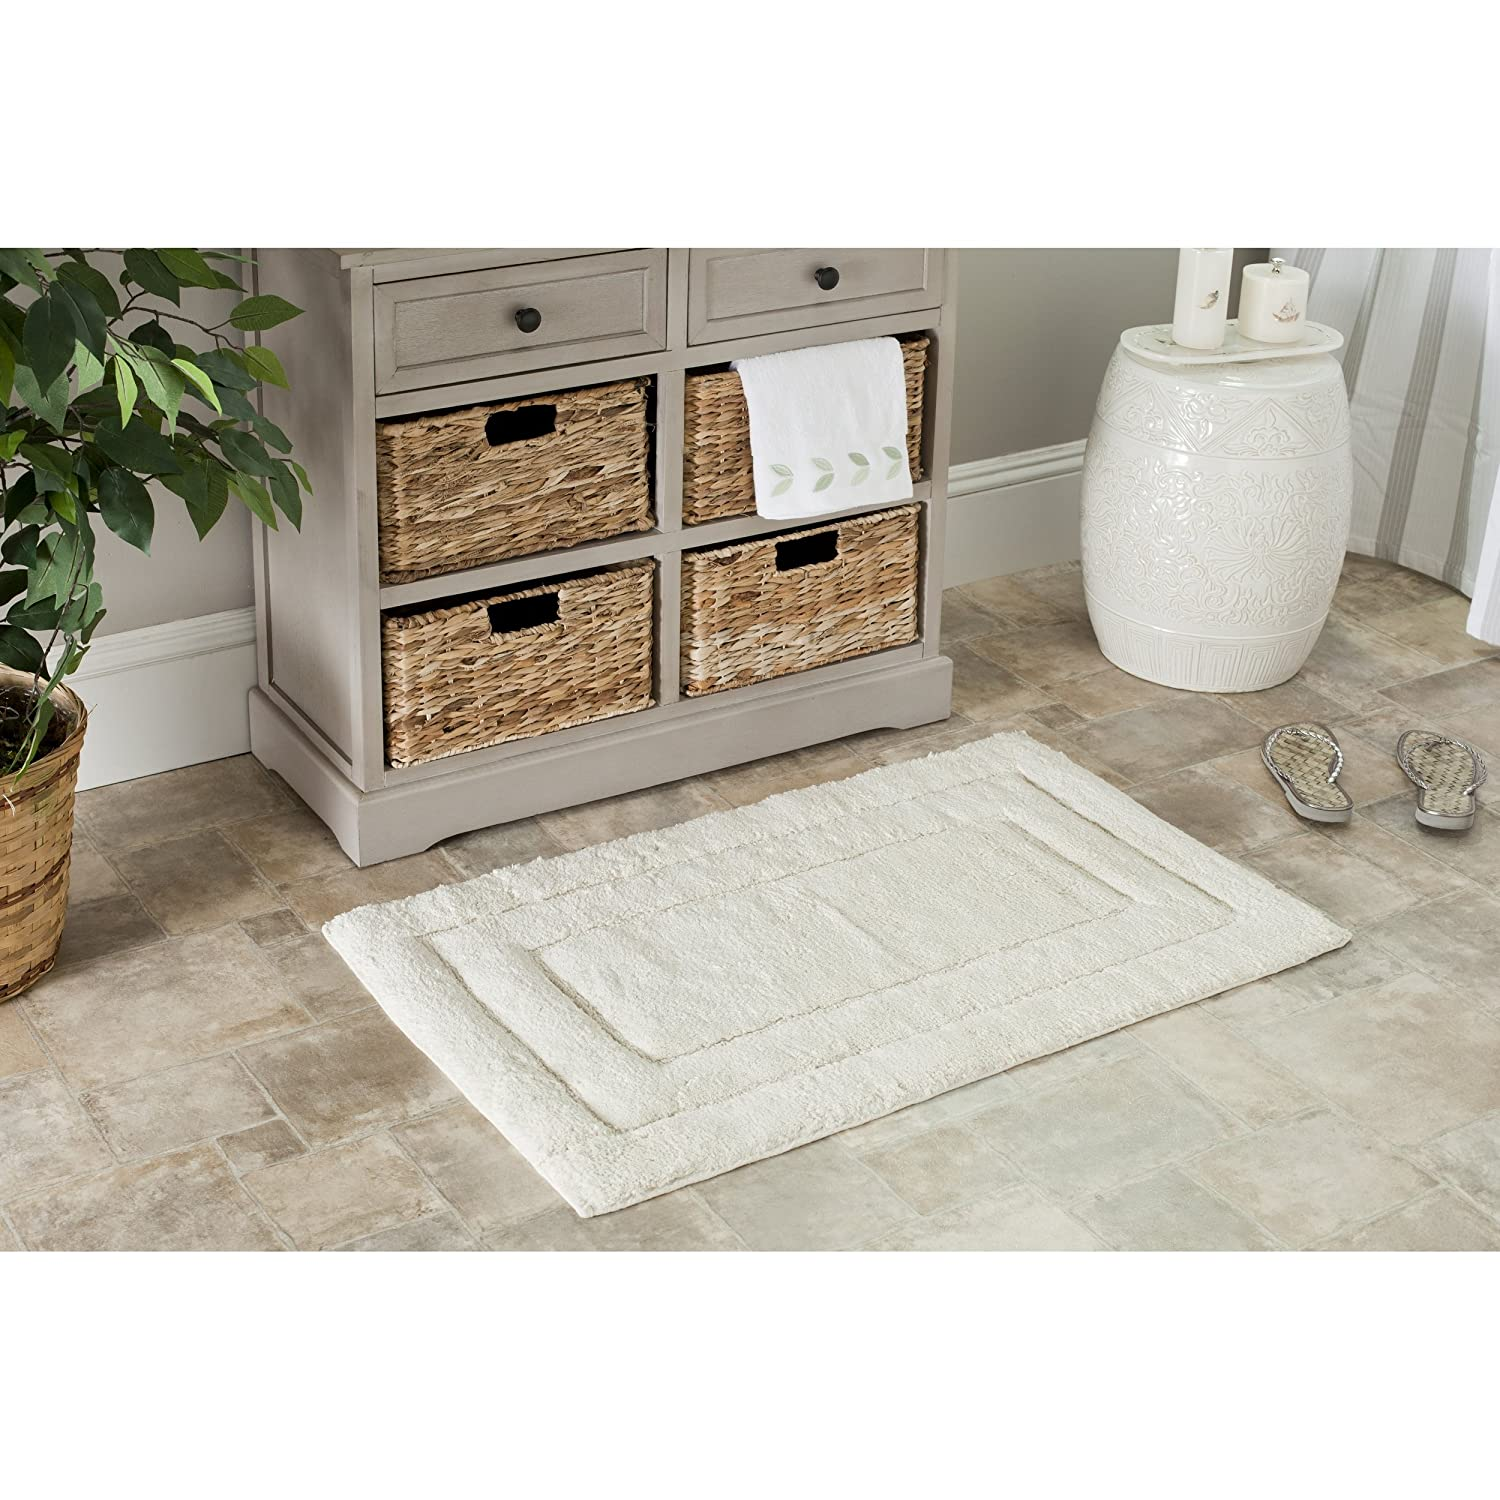 Amazon Com Safavieh Plush Master Bath 27 X 45 Bath Rug In White